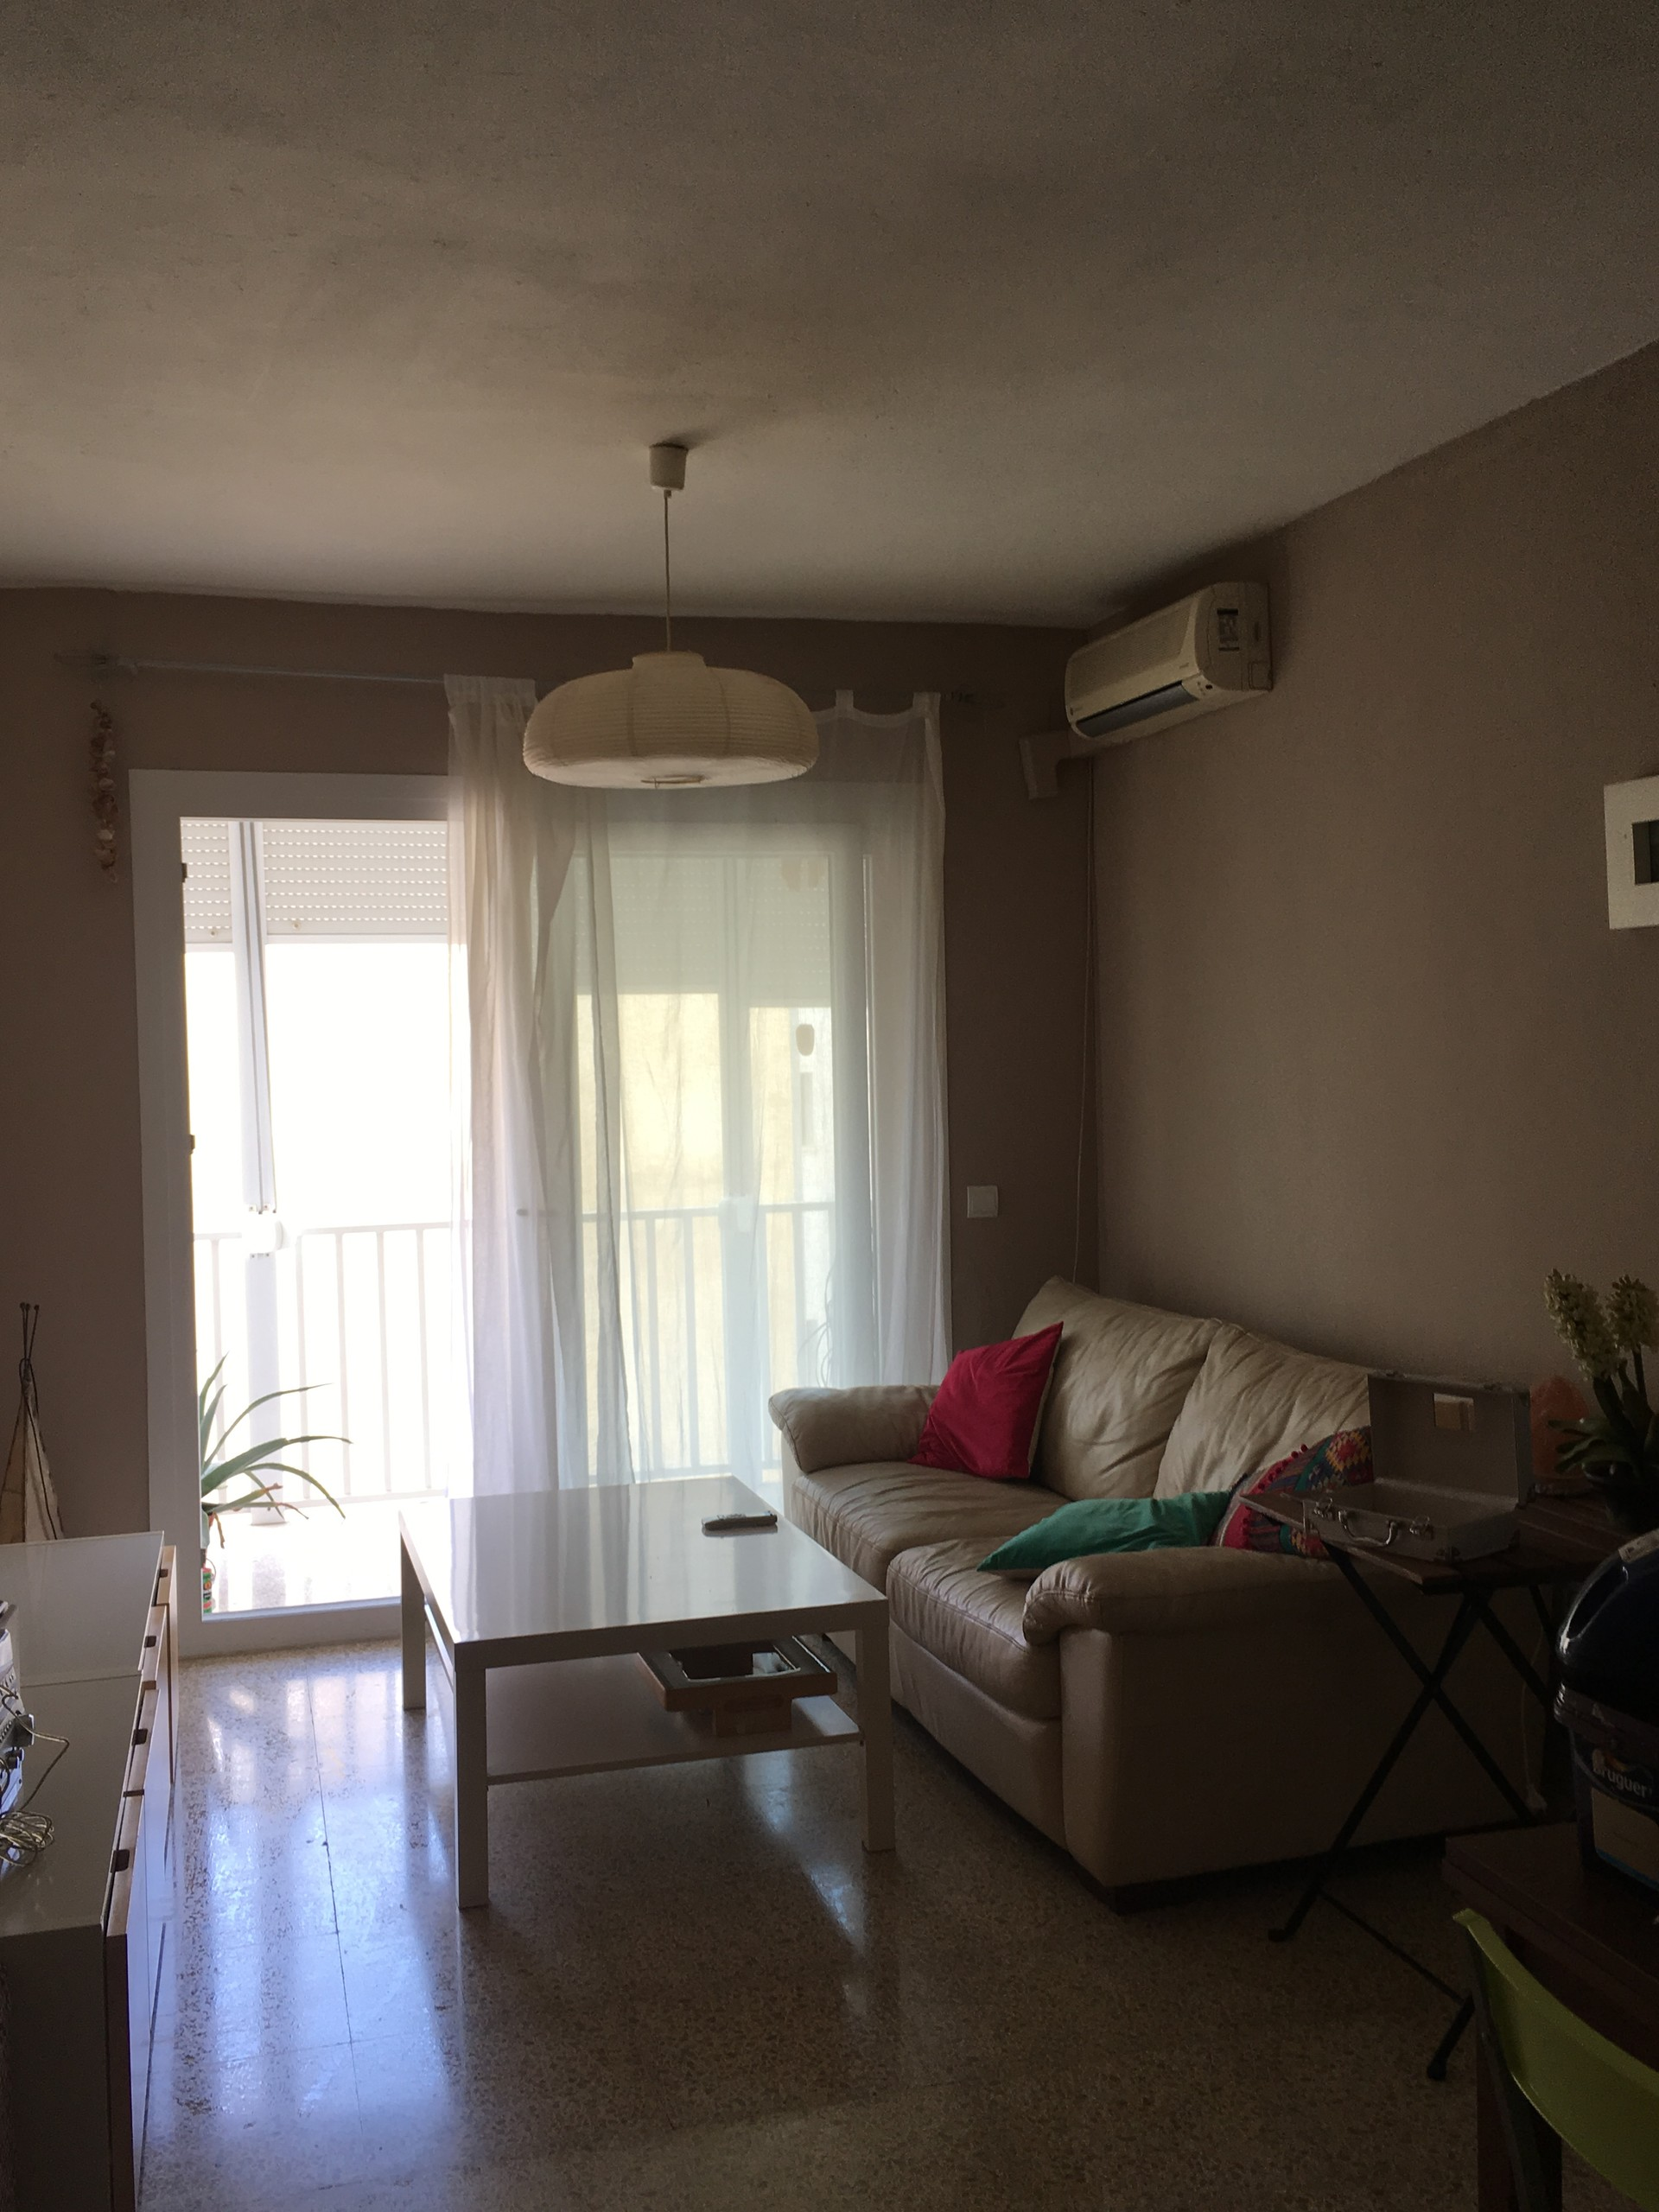 sunny-and-quiet-appartment-with-terrace-no-litf-close-to-city-center-four-dgloor-6402b5a47ff350802362a5bfc54ccbef